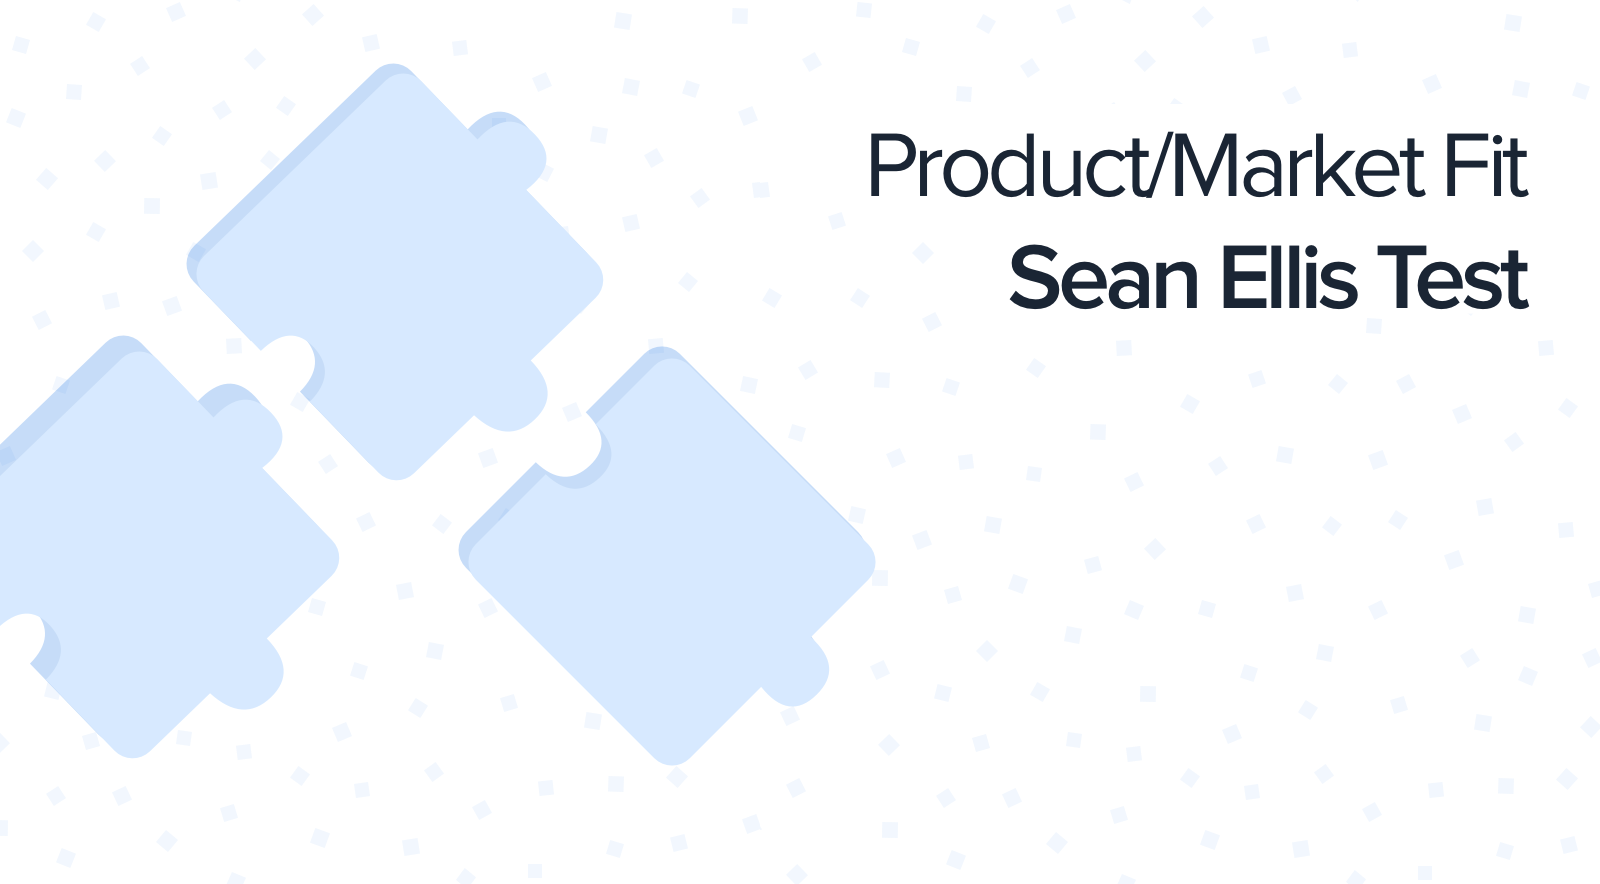 Sean Ellis Test: A Successful Method to Figure Out Product/Market Fit